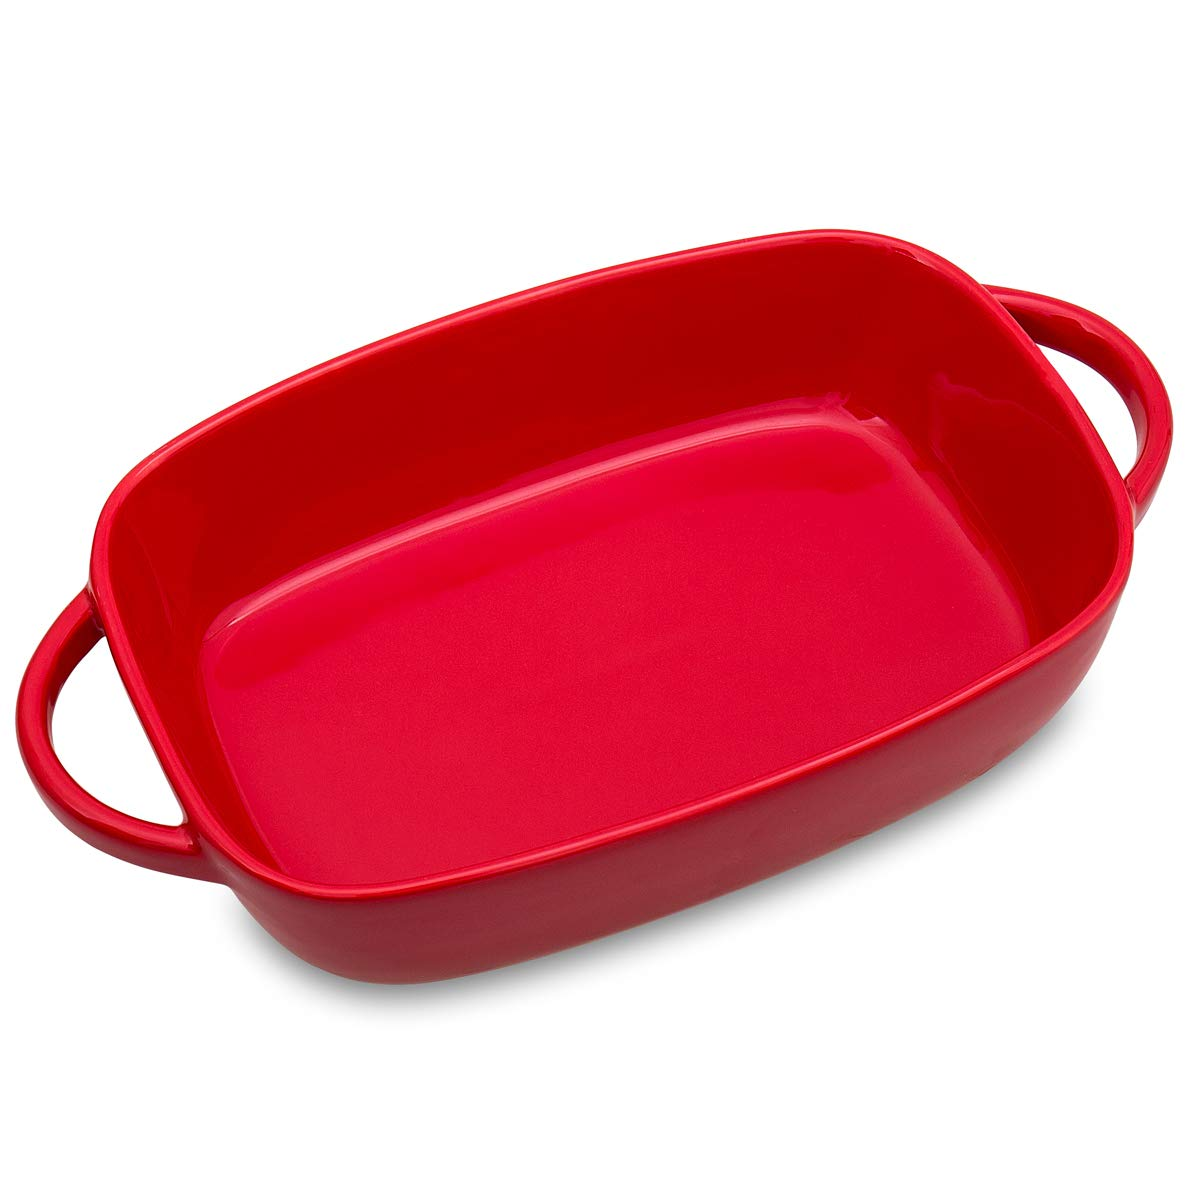 13inch Oval Baking Dish for Oven Casserole Dish Lasagna Pan Large Ceramic Bakeware with Handle